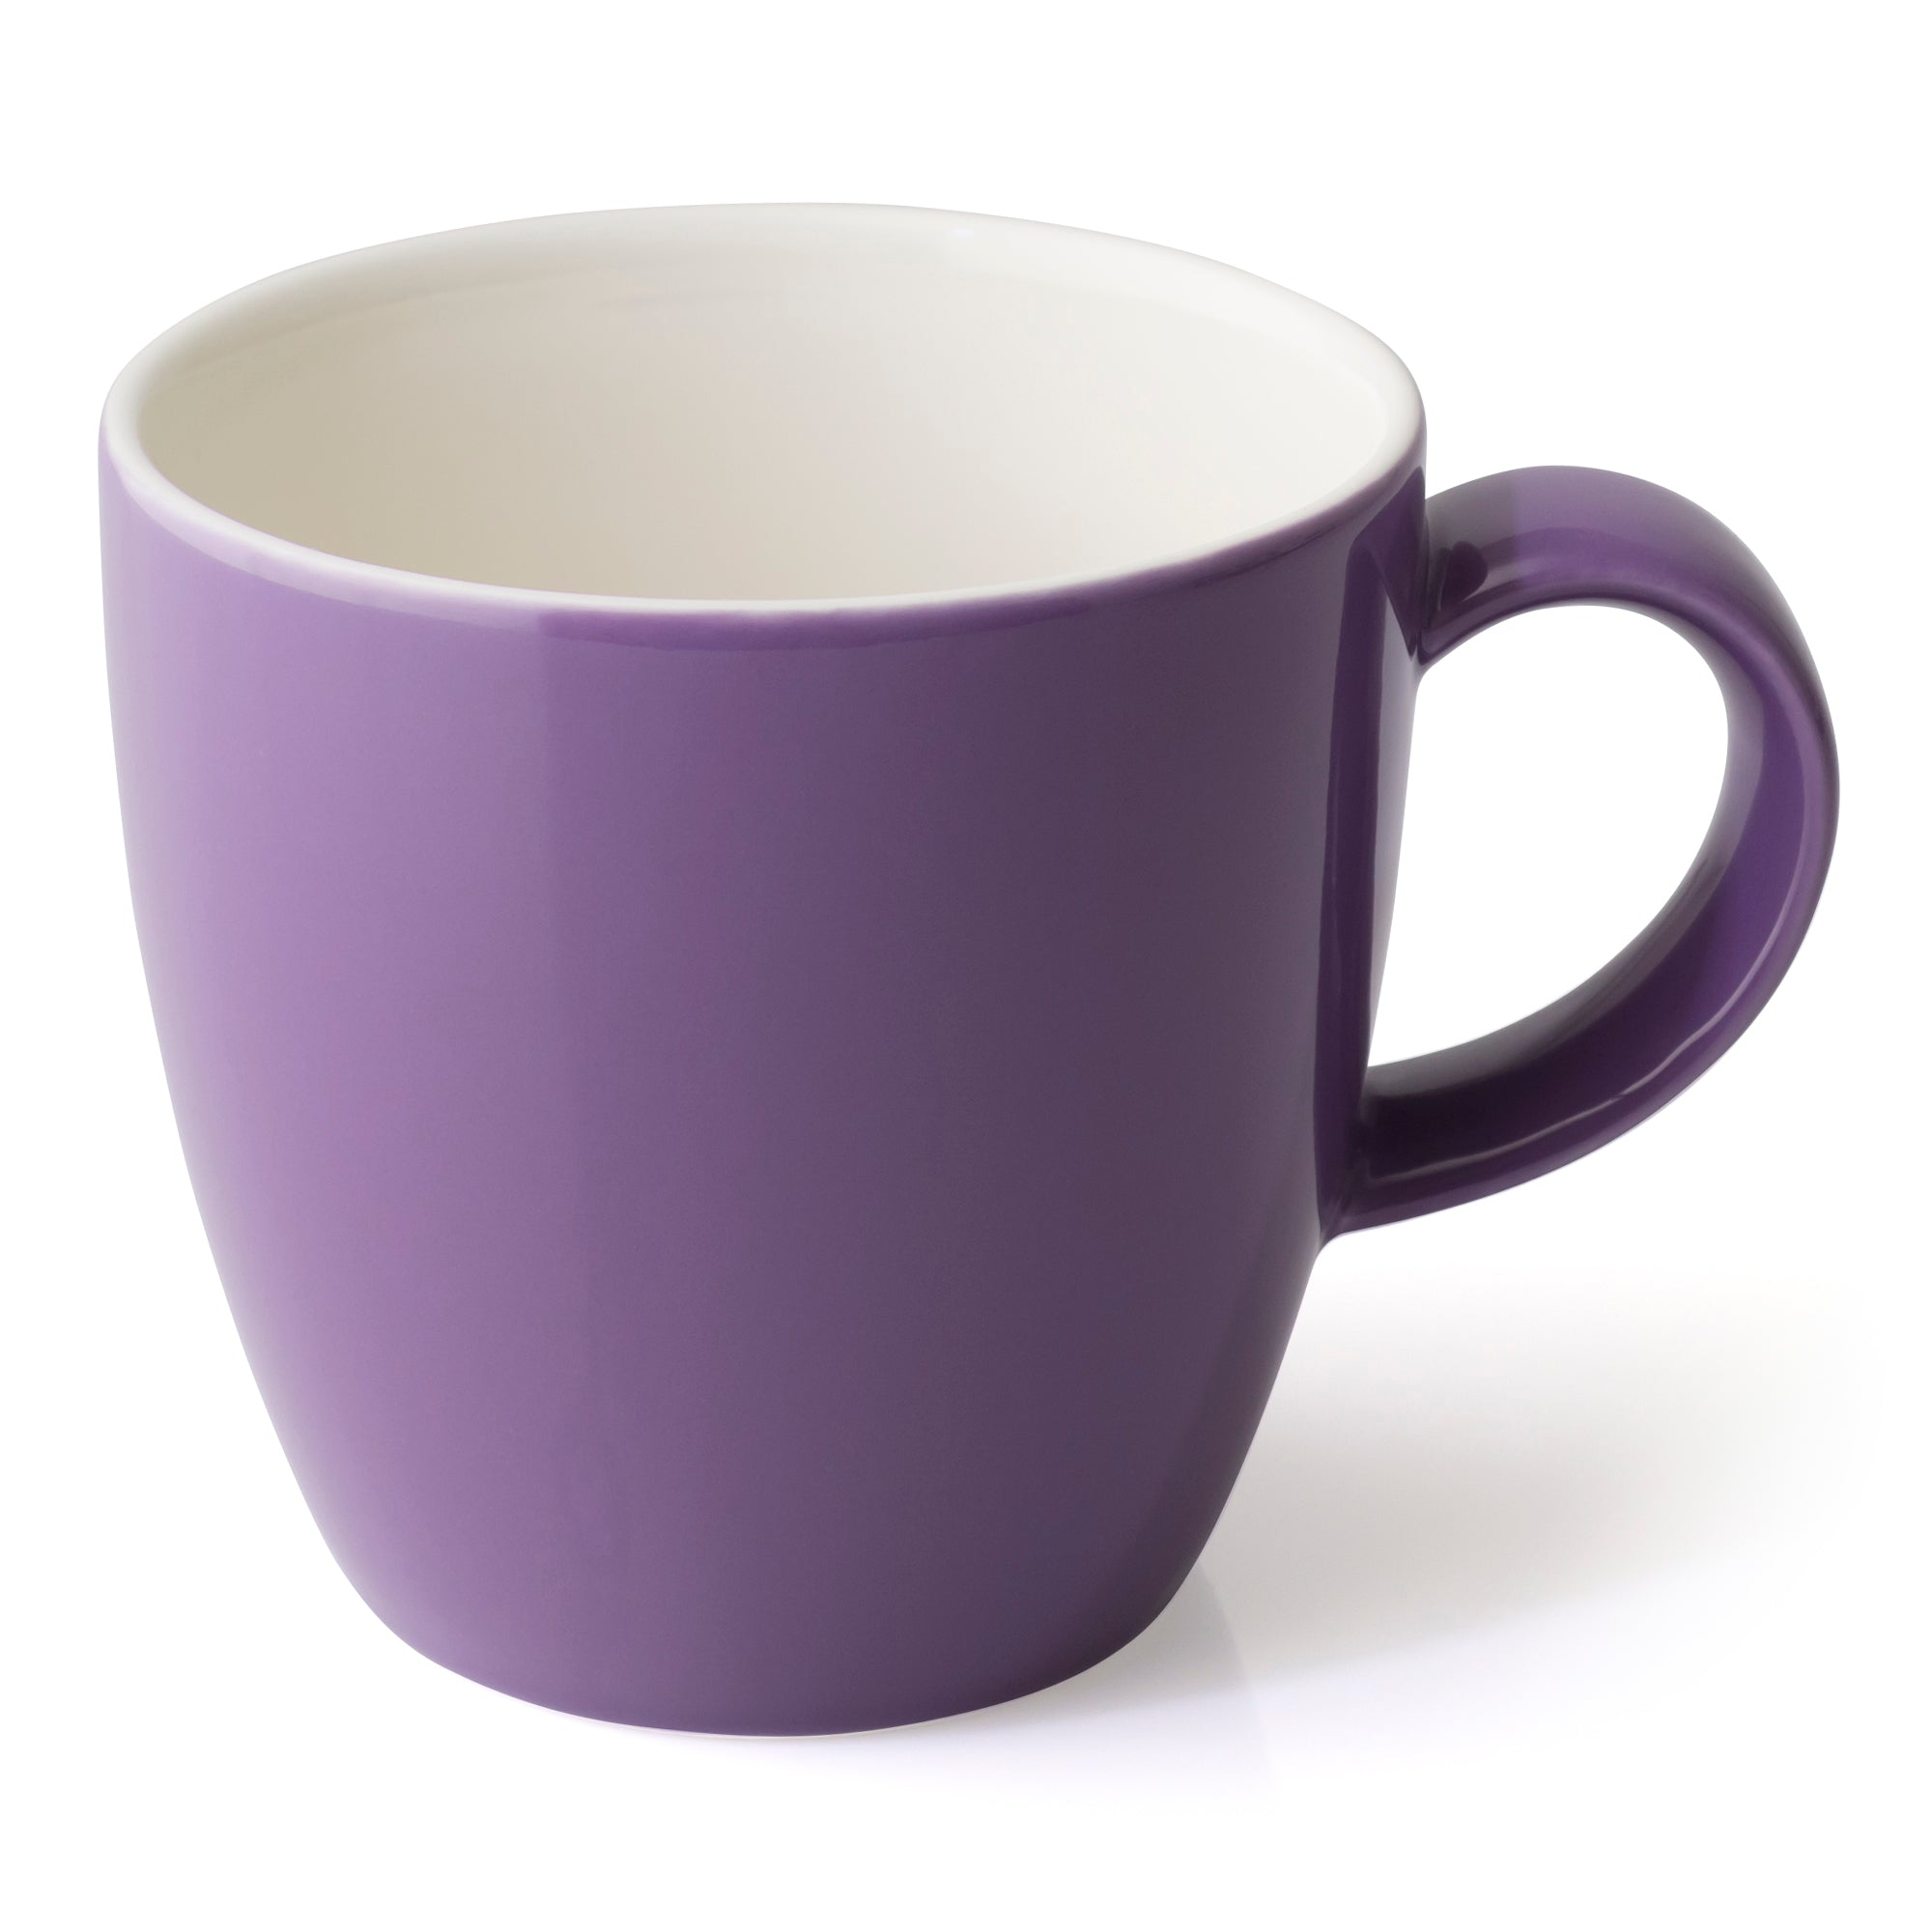 Uni Tea/Coffee Cup with handle - 11 oz., 4 pc pack